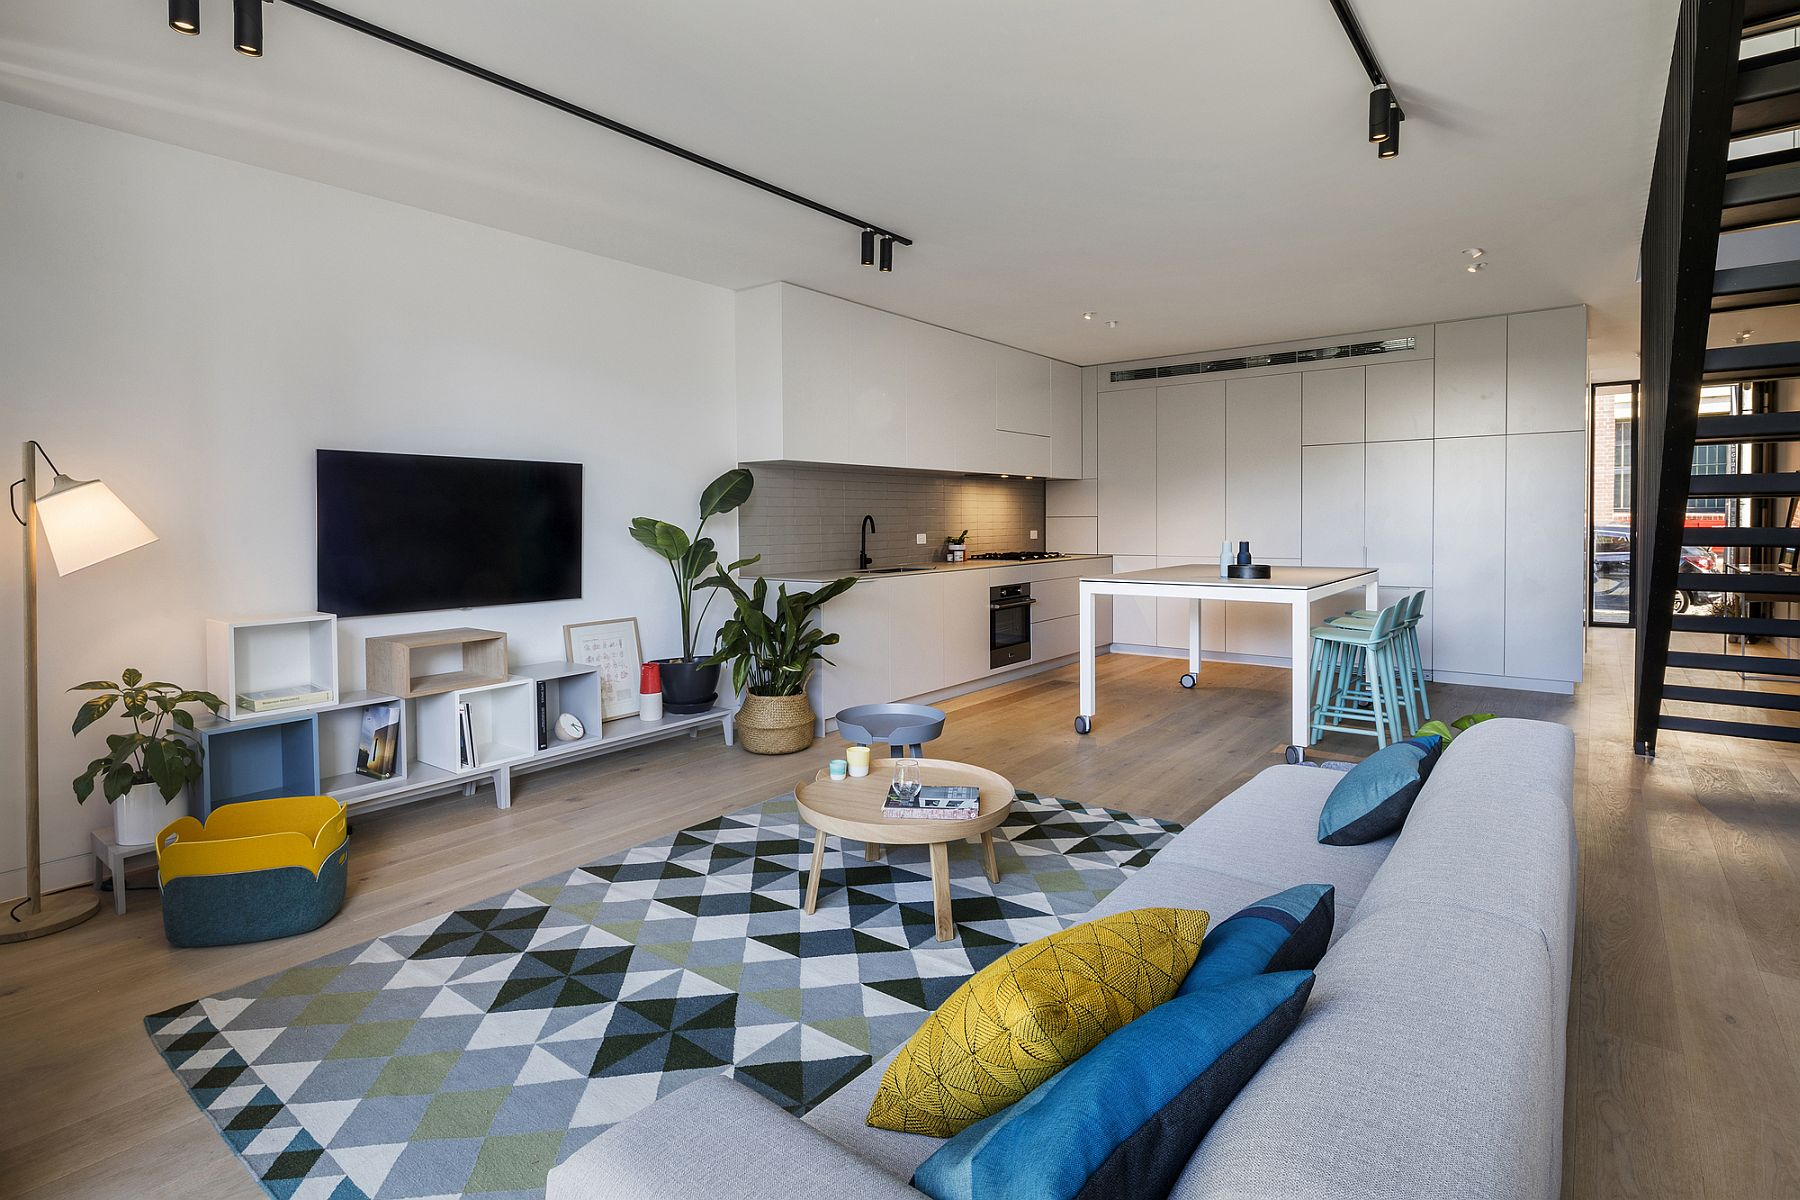 White living area with blue and yellow accents and a striking rug